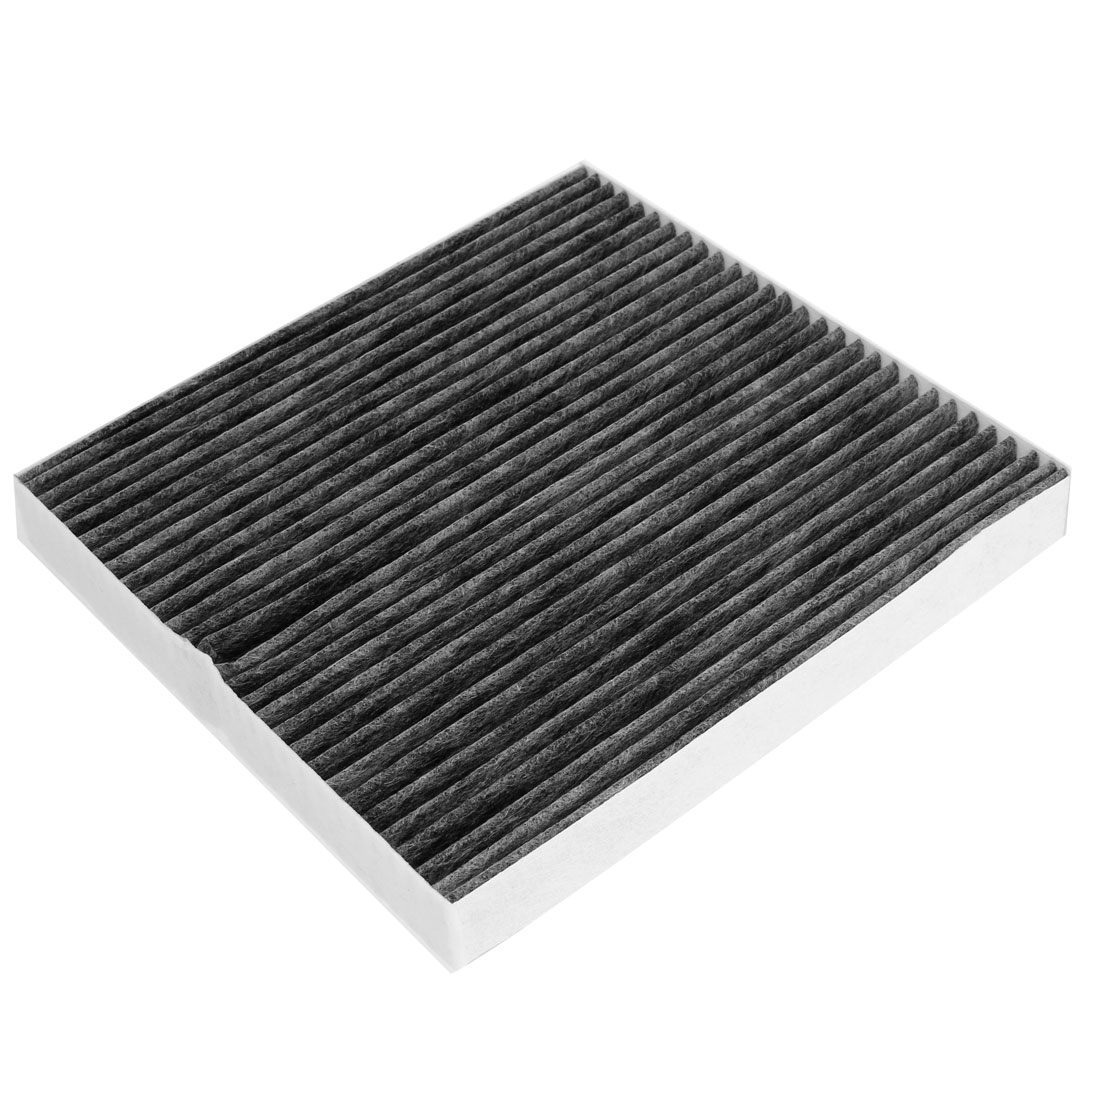 Car Air Filter Replacement Bing Images